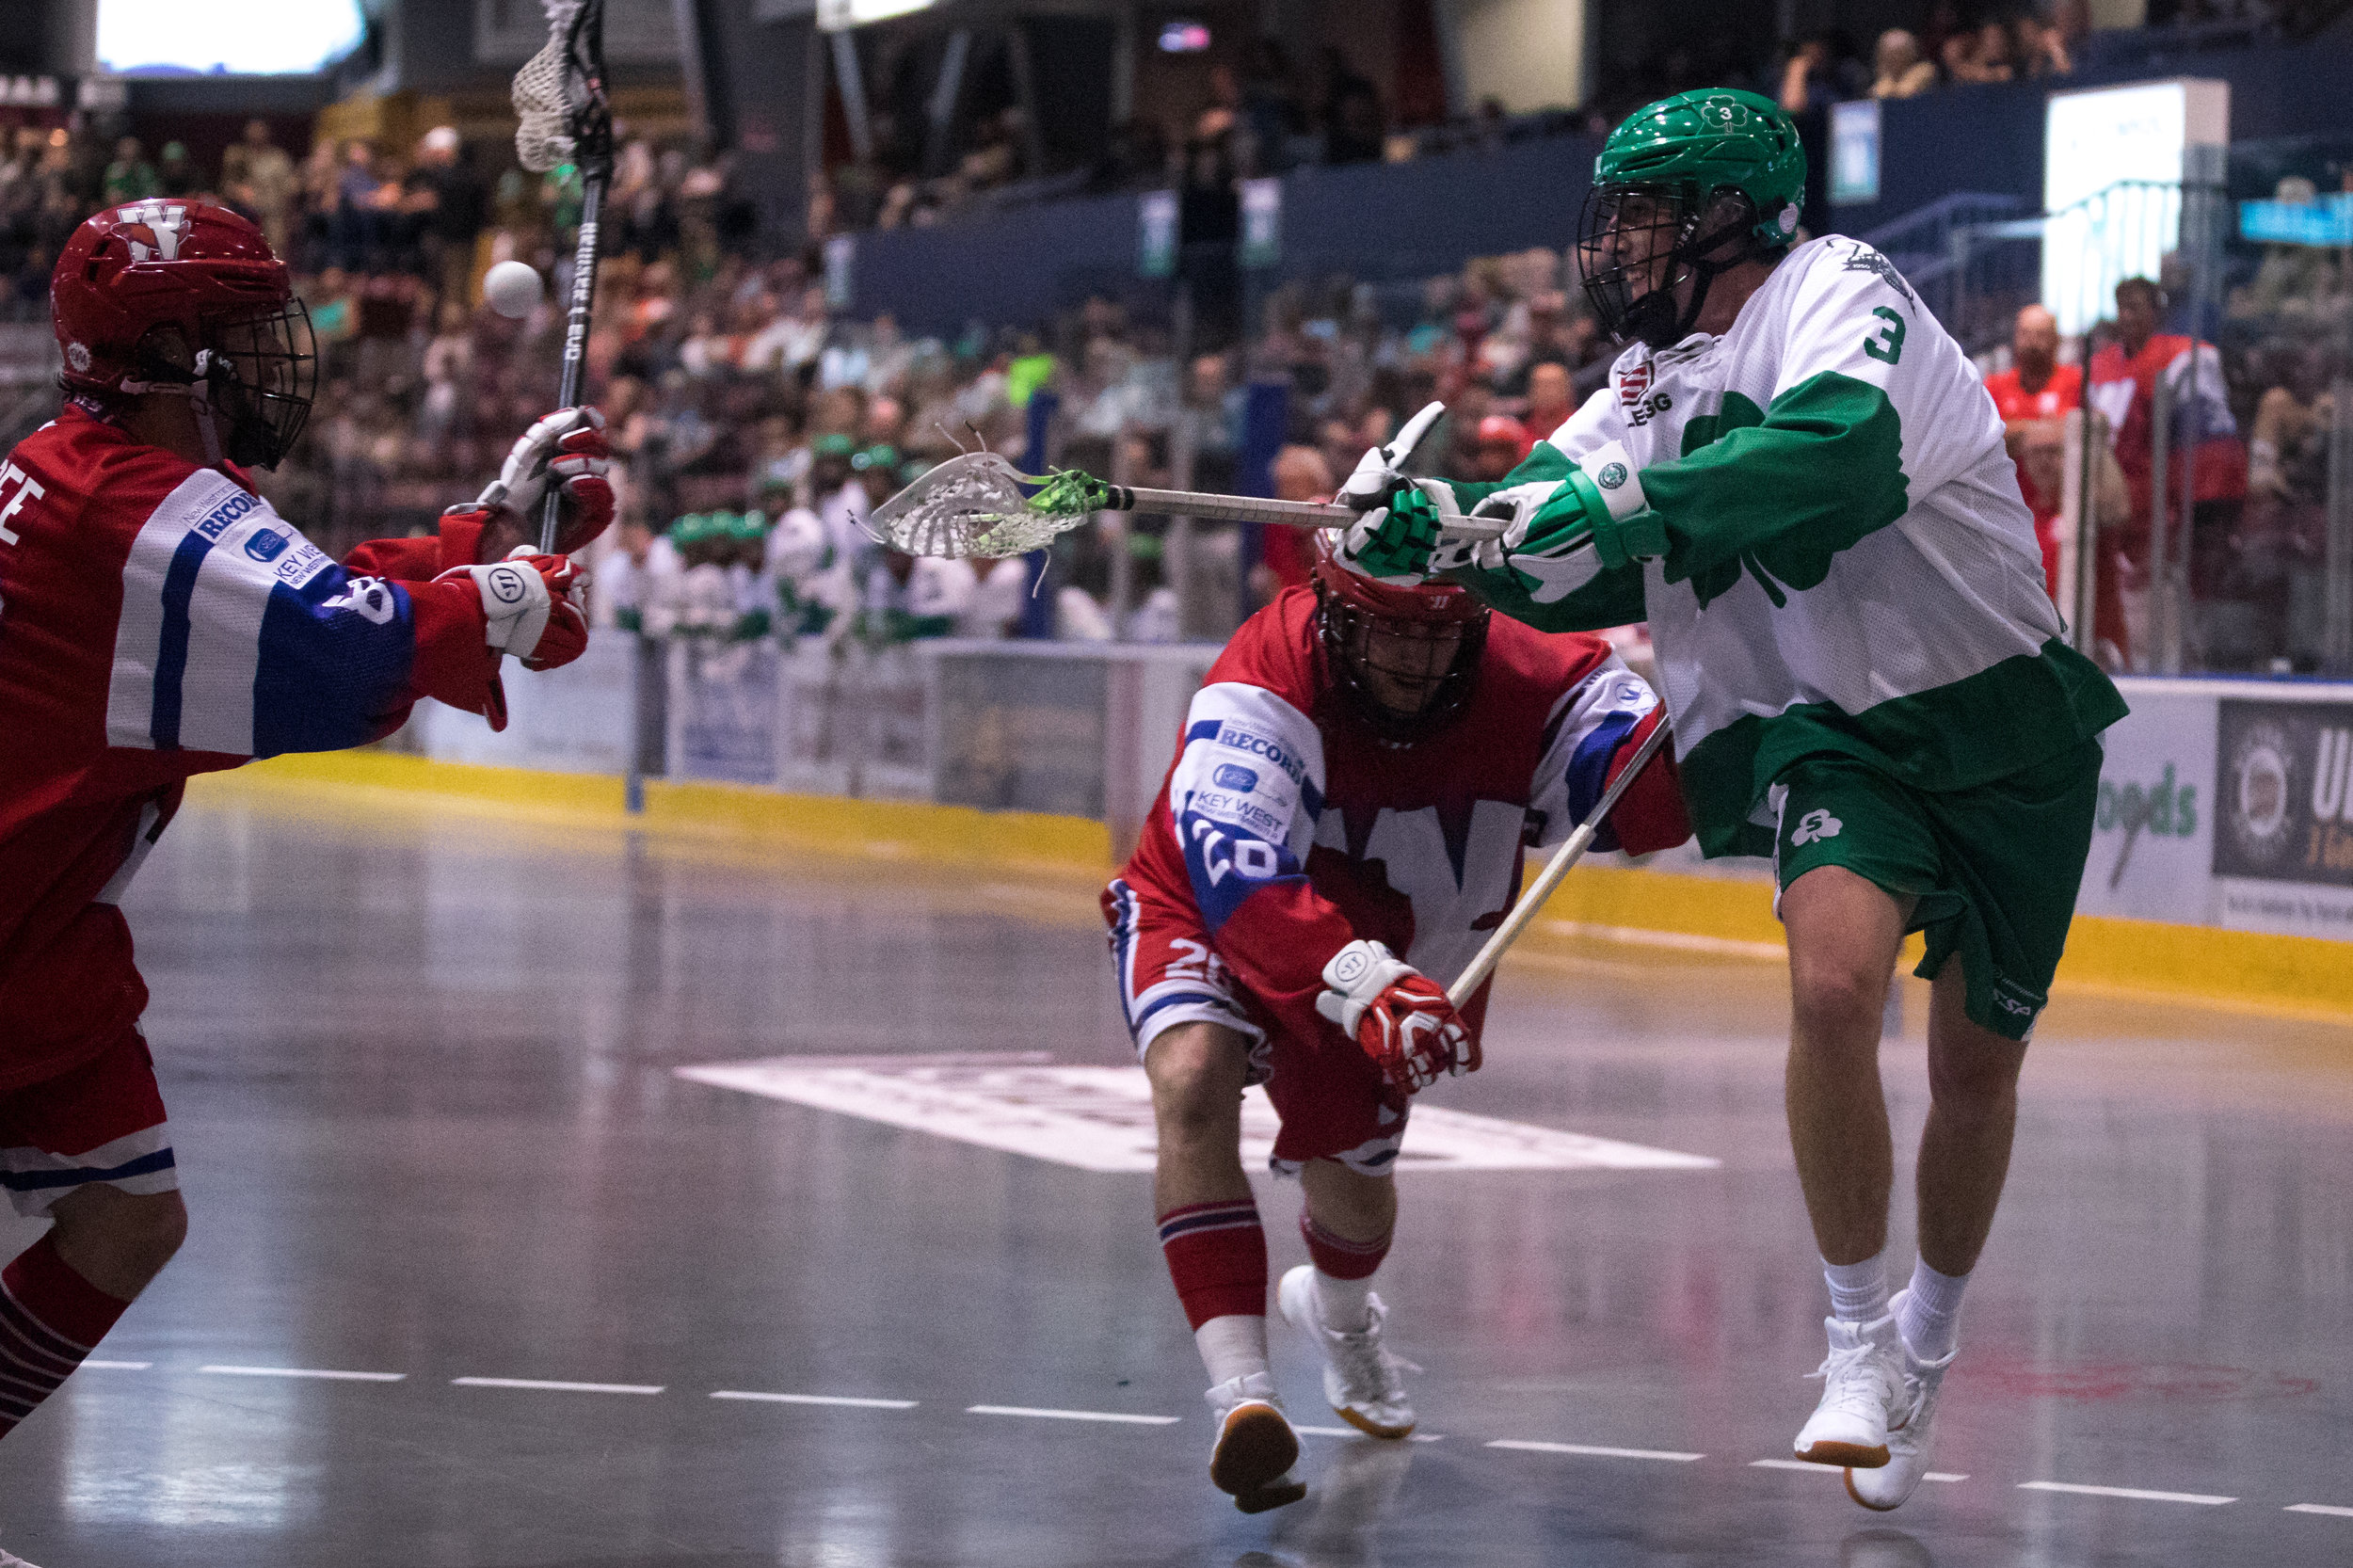 Victoria Shamrocks VS New Westminster Salmonbellies - June 14 2019. Photo by Jay Wallace-33912.jpg